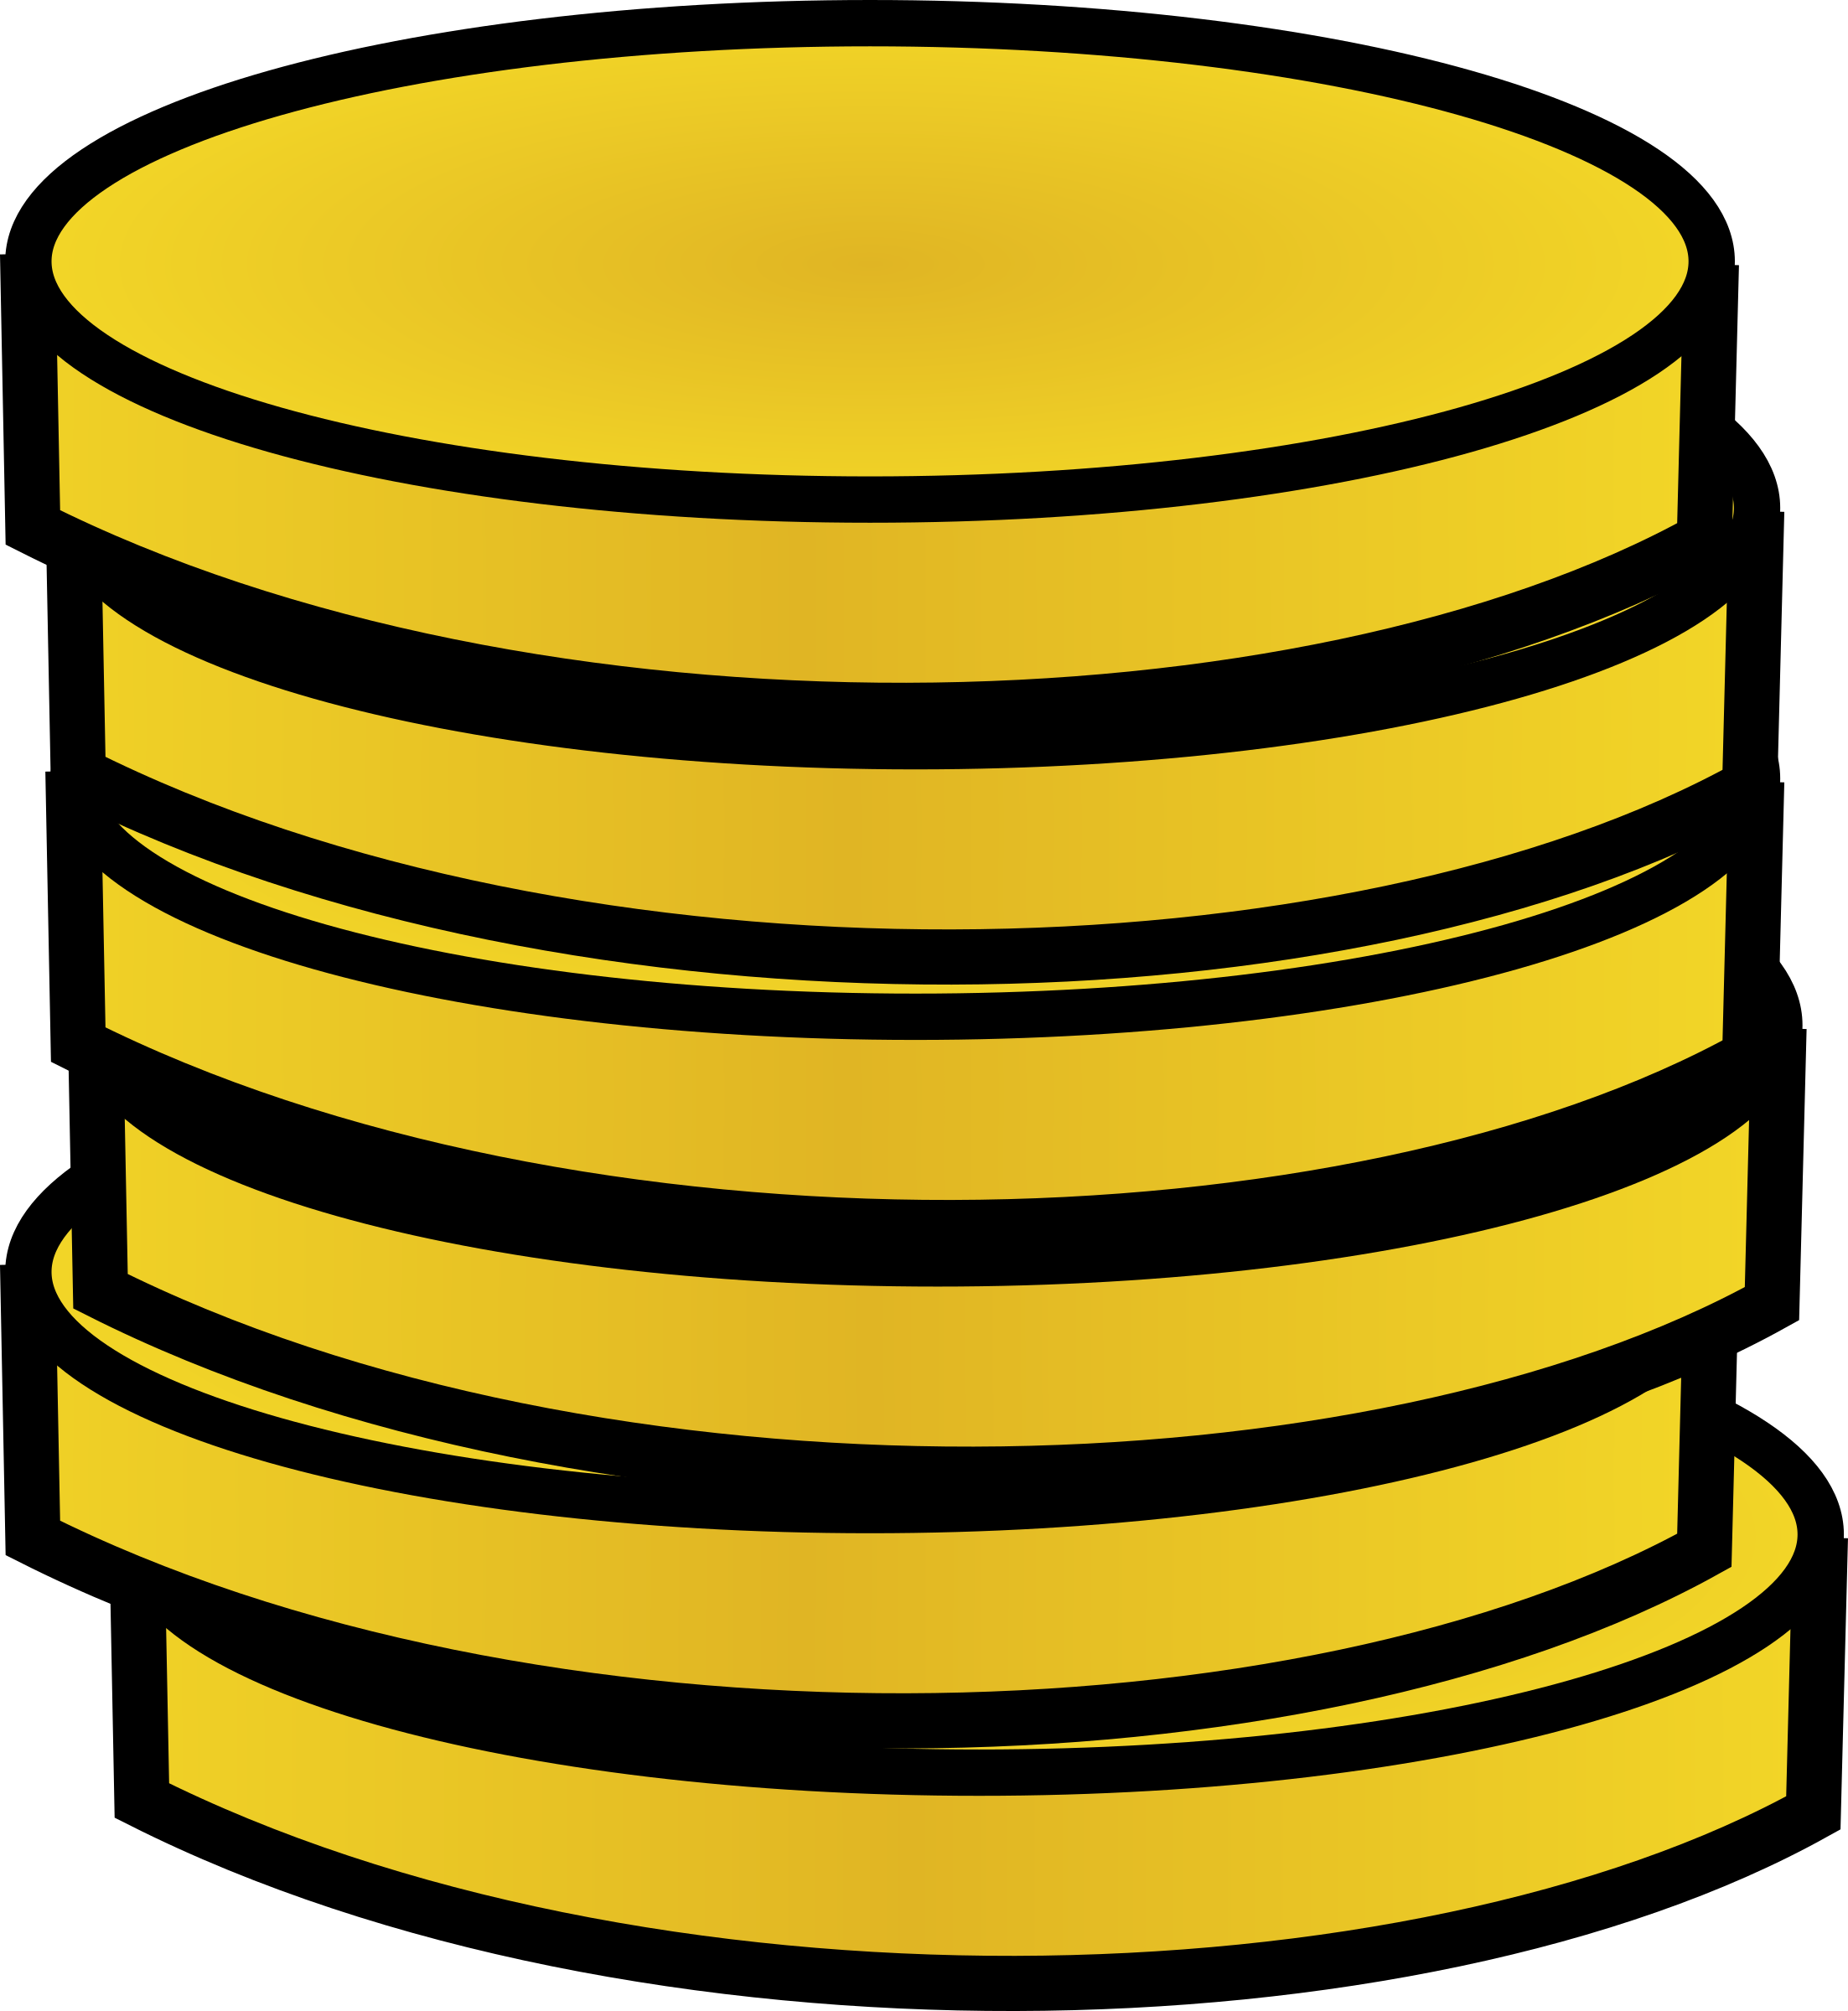 Stack of money clipart graphic royalty free stock Clipart - Stack of gold coins graphic royalty free stock